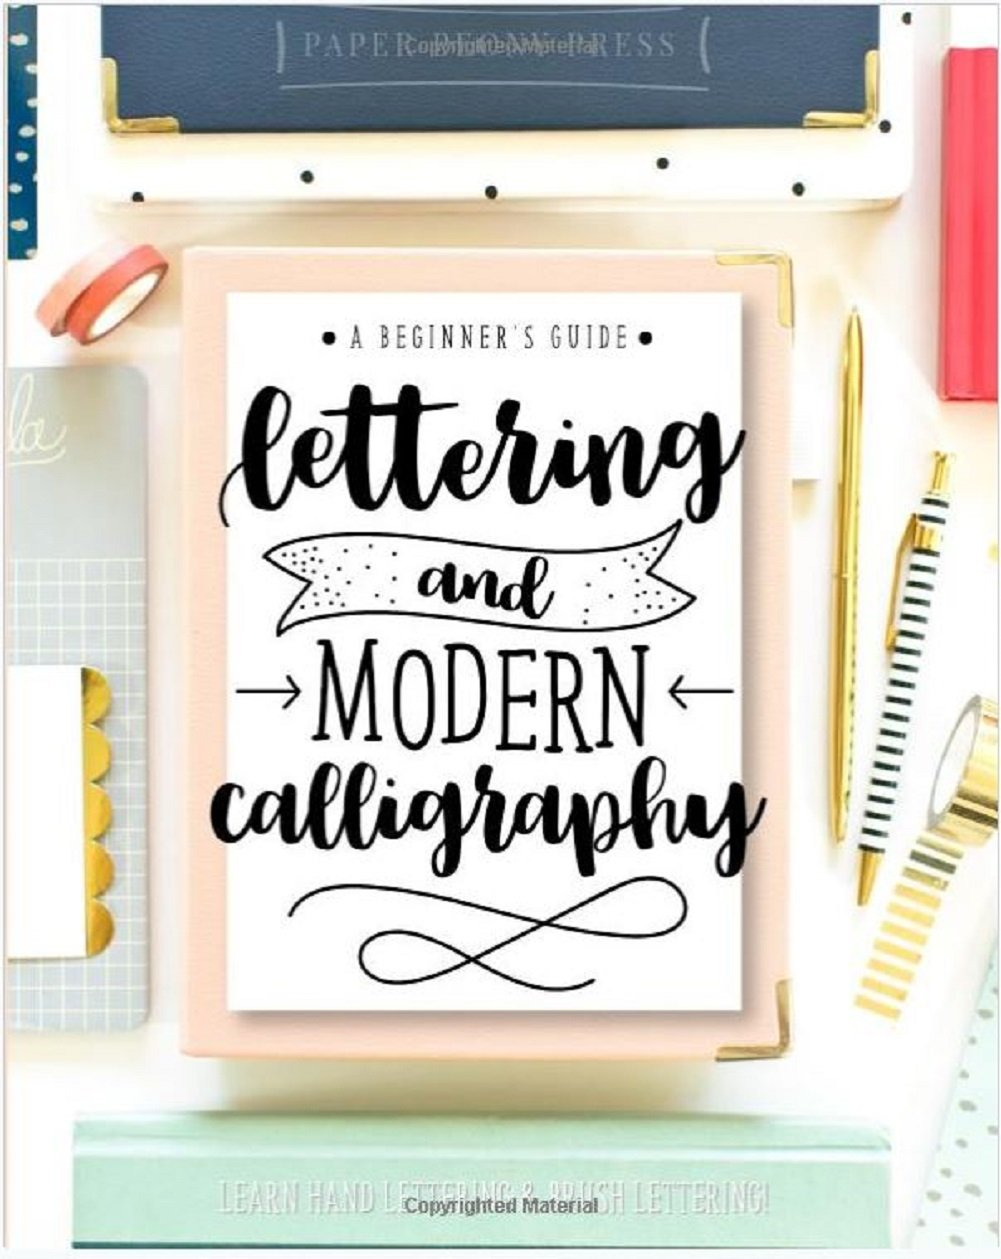 Lettering kit : Tombow Lettering Set Marker & Lettering and Modern Calligraphy: A Beginner's Guide: Learn Hand Lettering and Brush Lettering by American Tombow (Image #3)